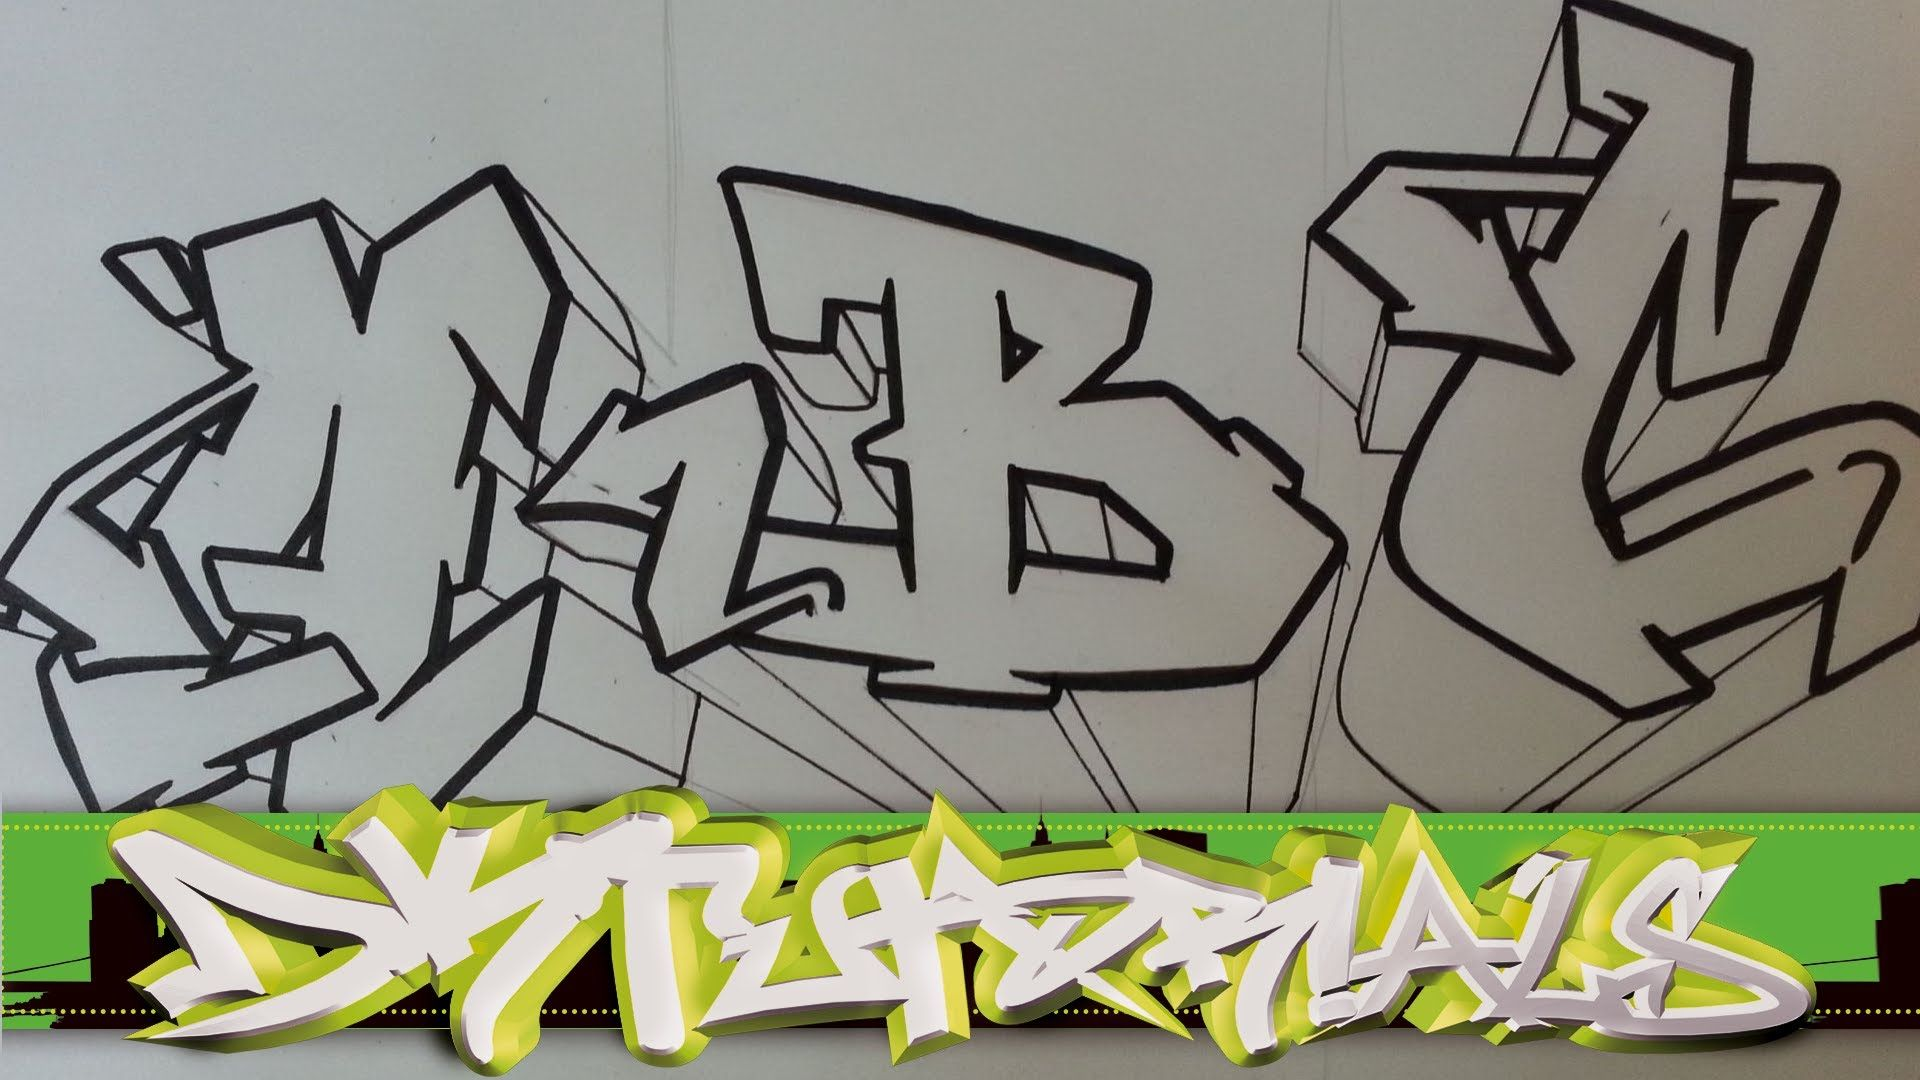 How to draw graffiti wildstyle graffiti letters abc step by step